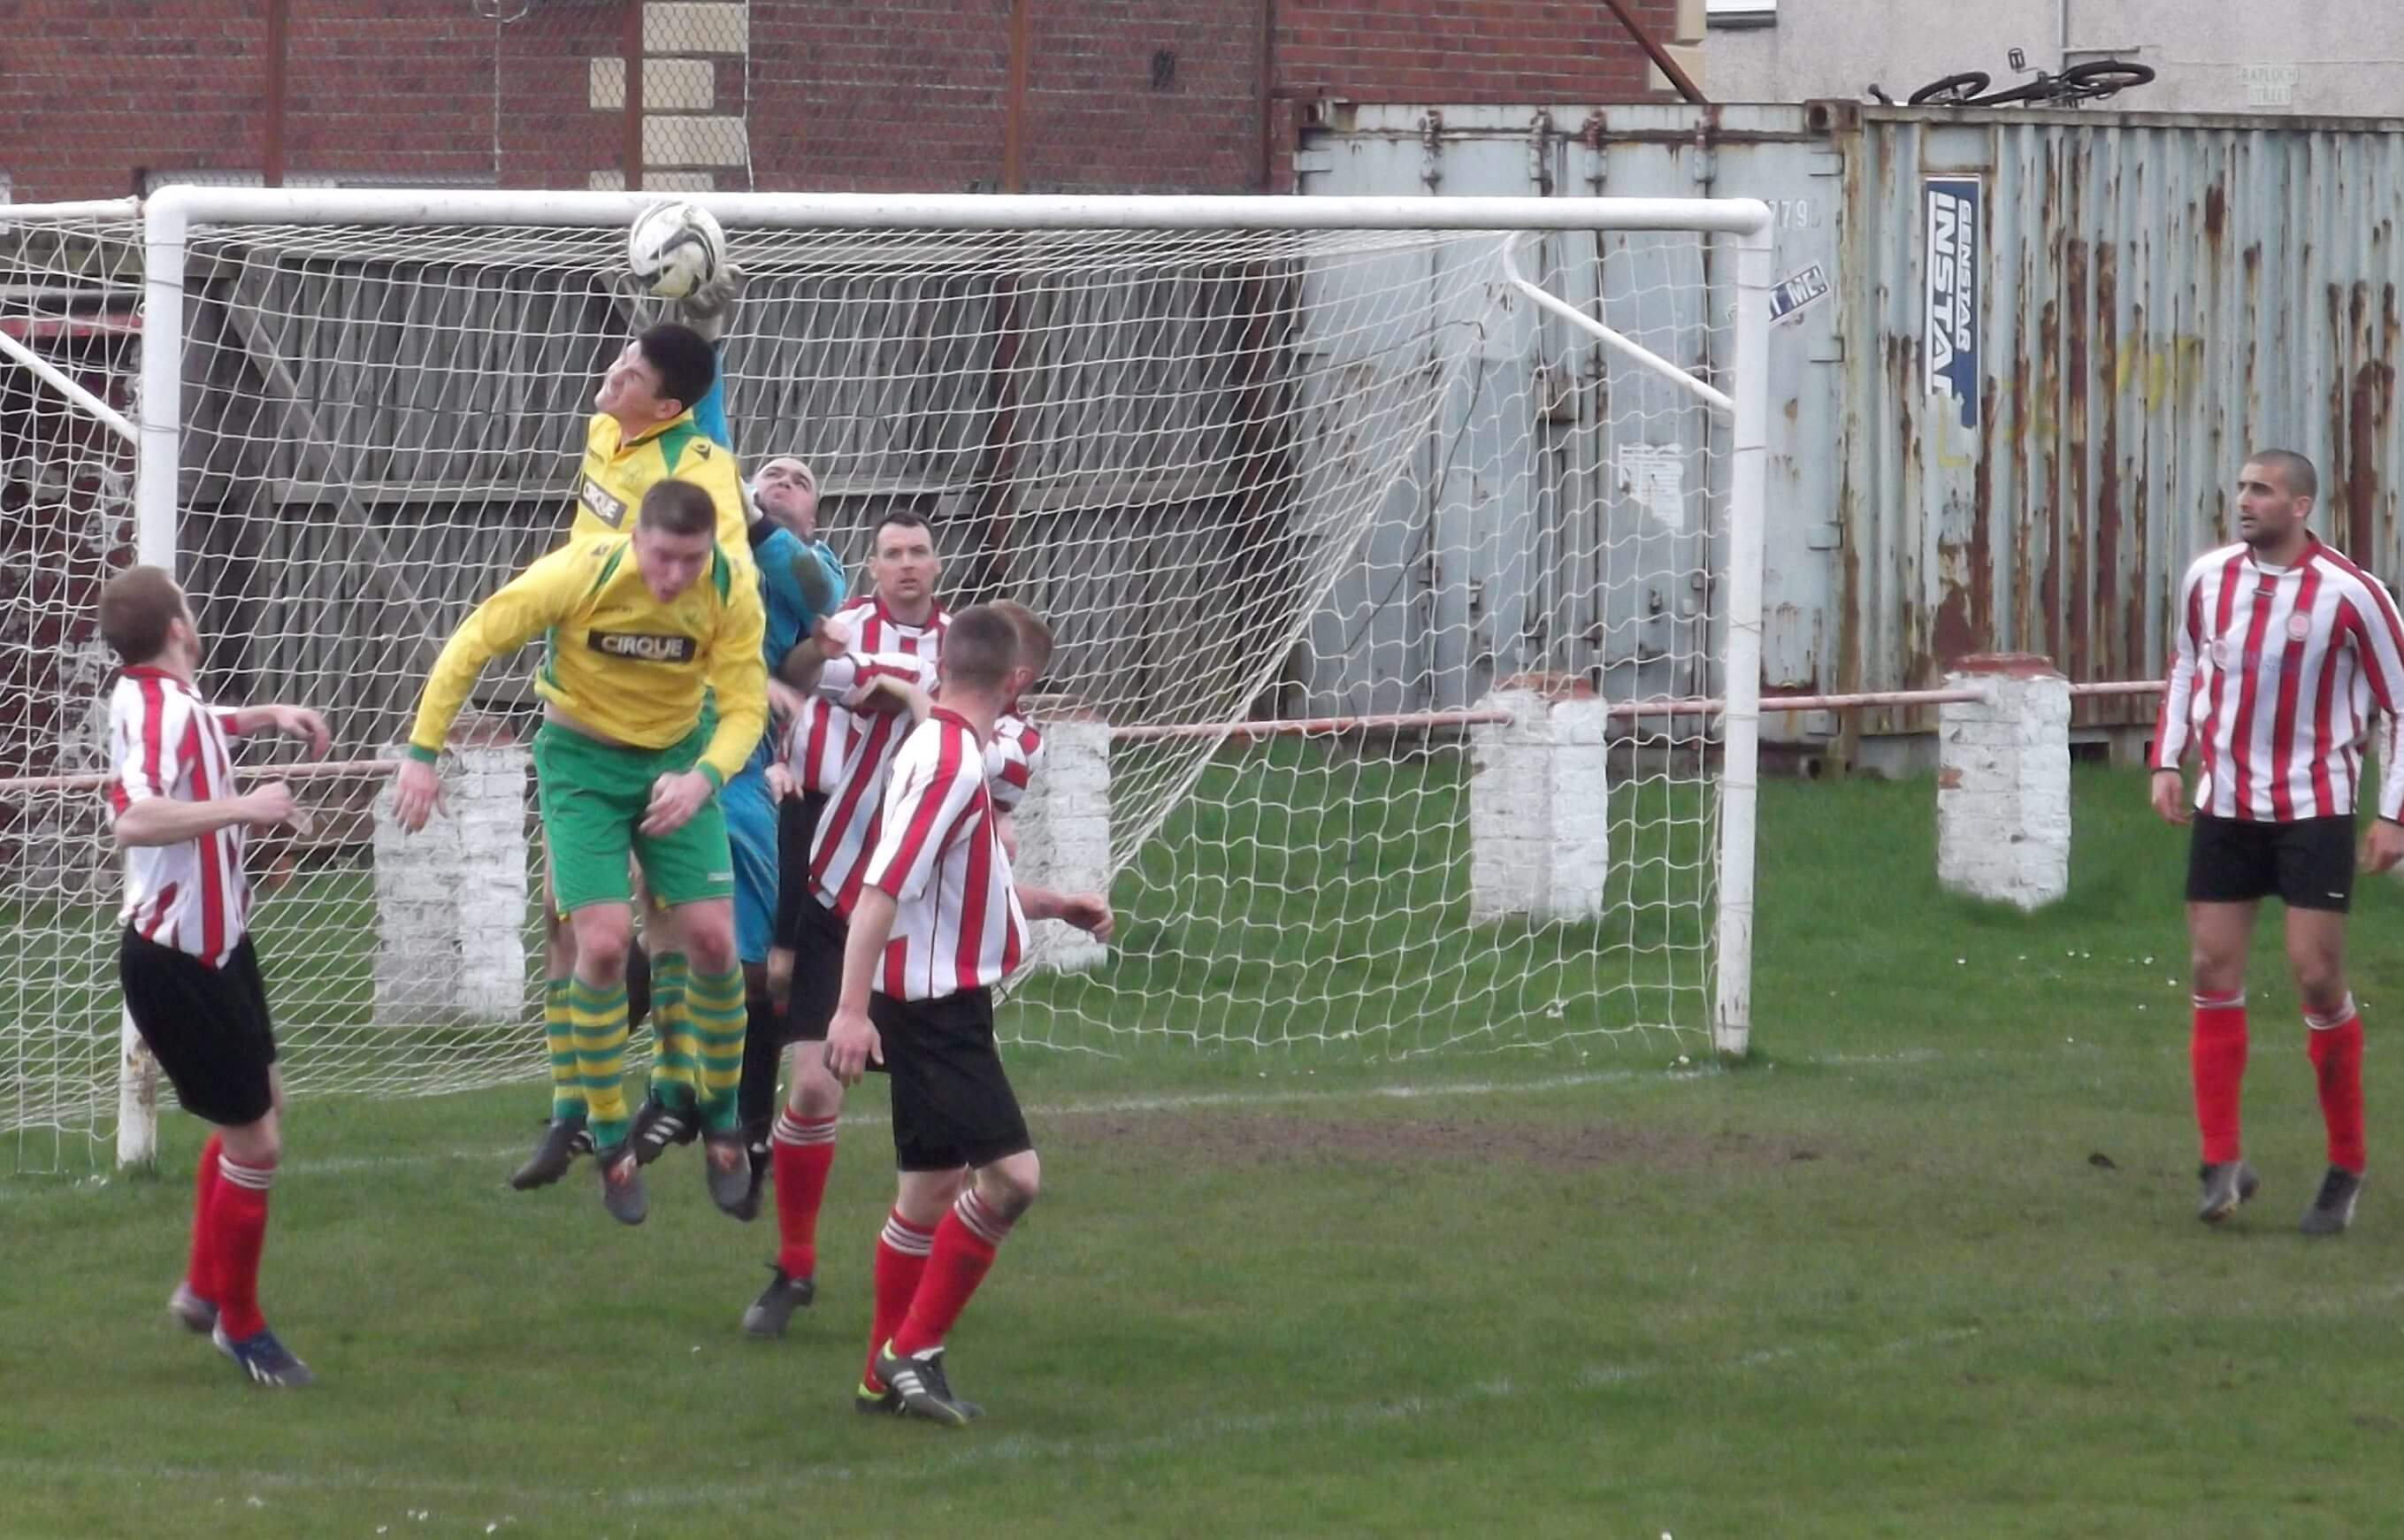 Lee Moss gets up well to save in the second half